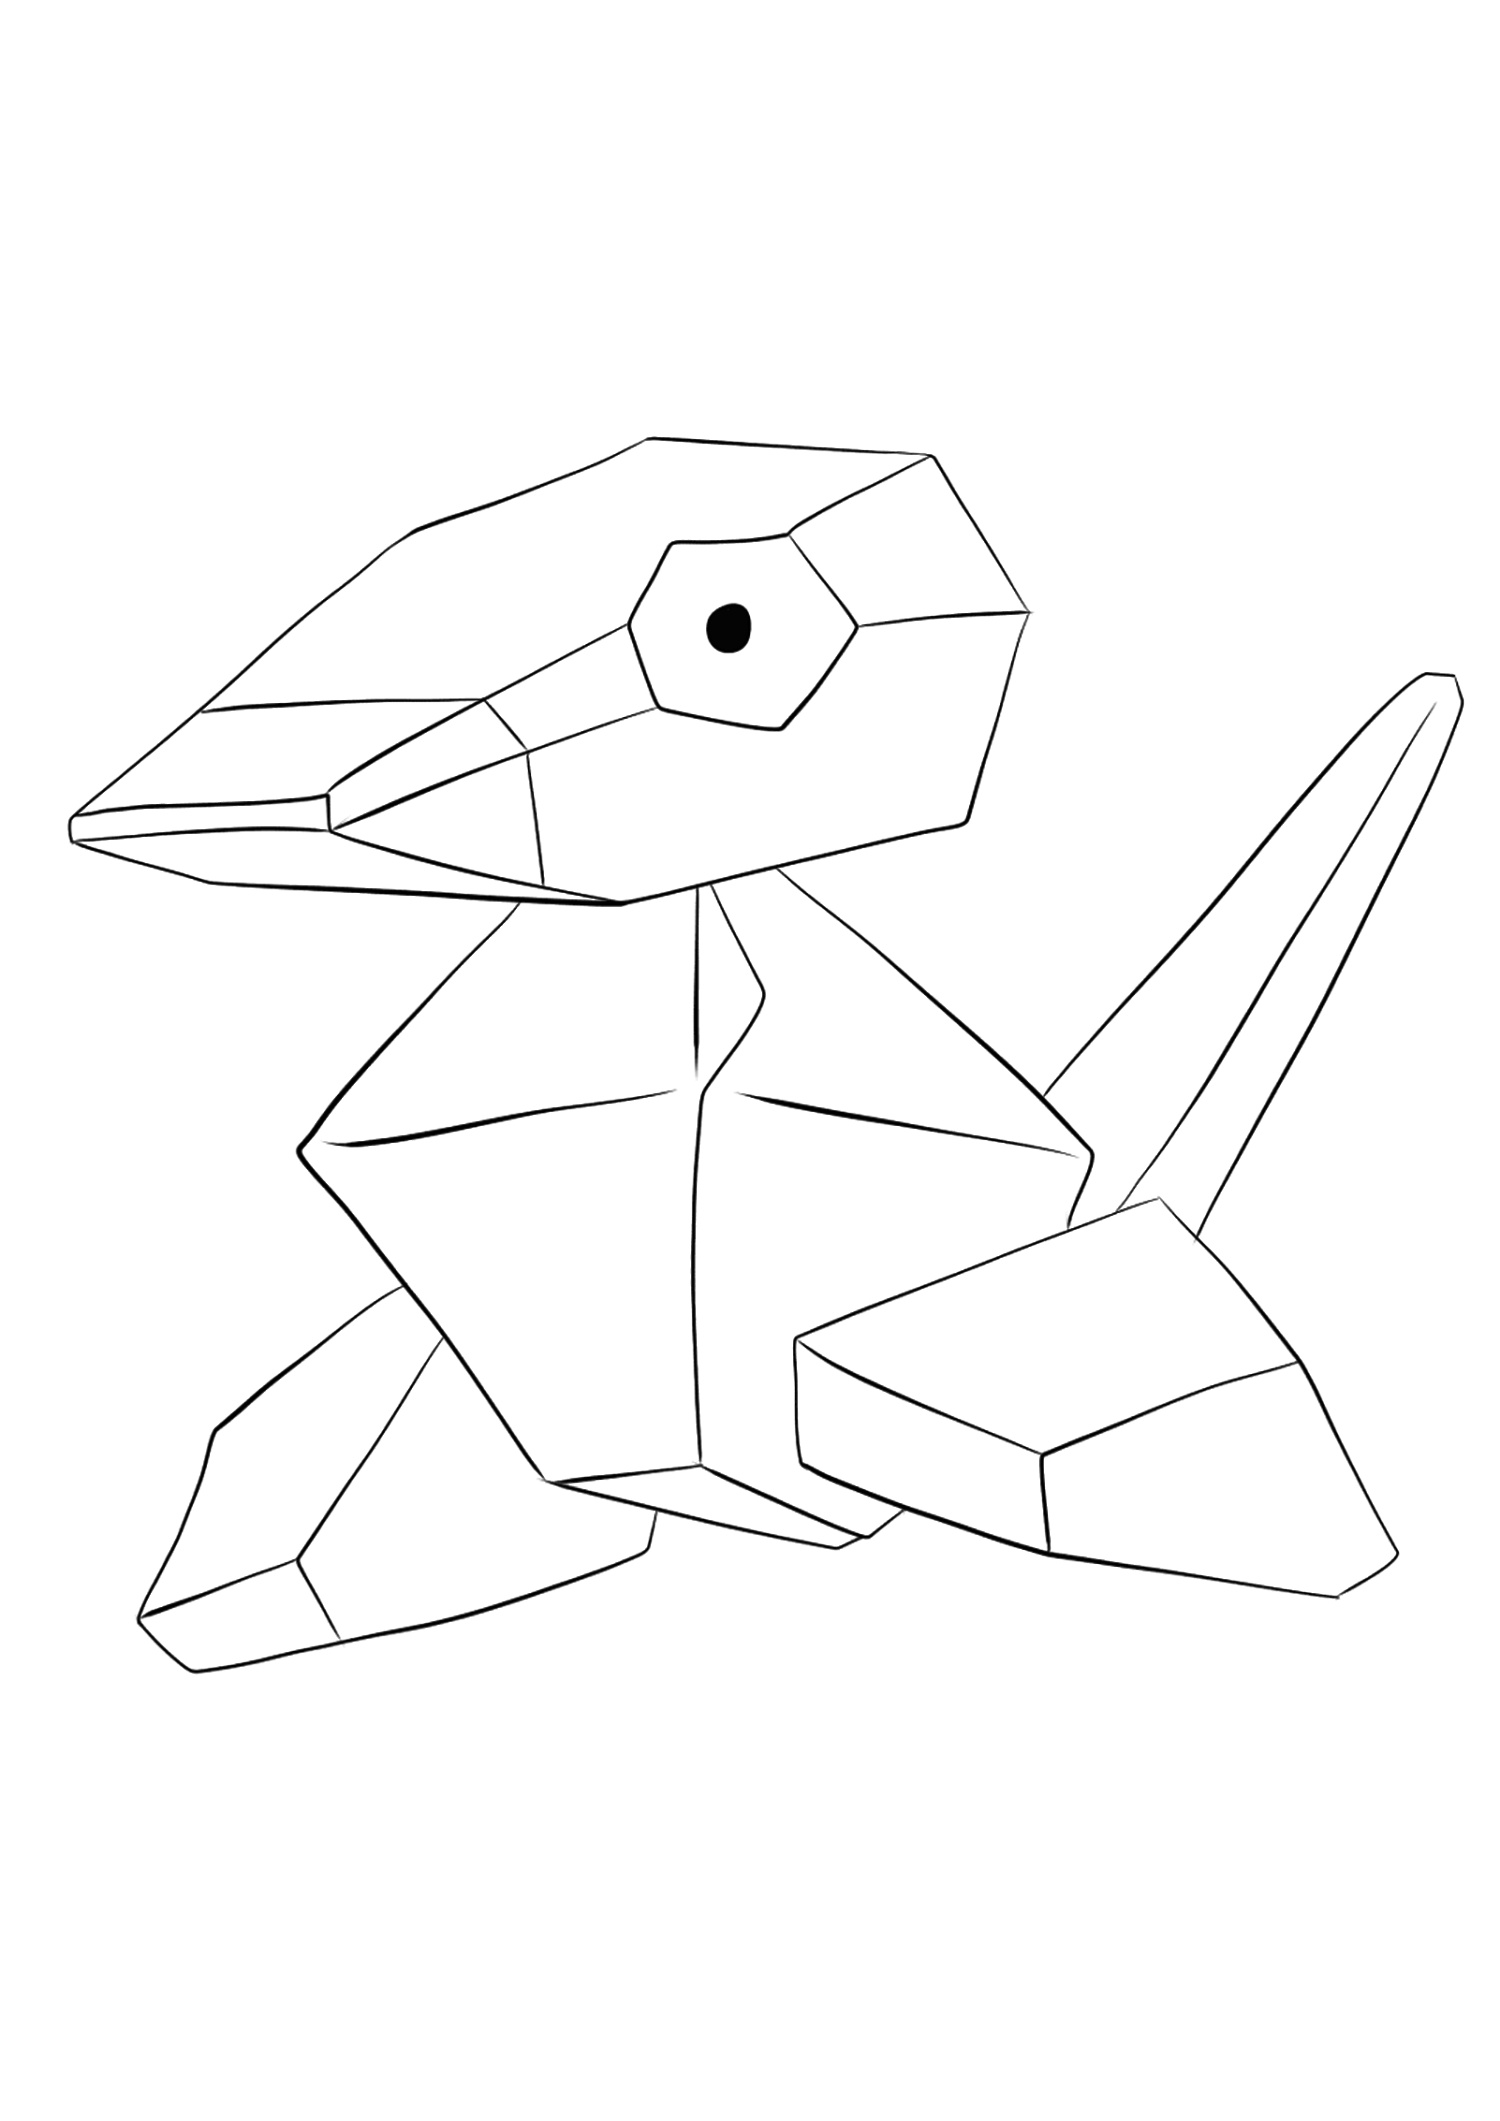 Porygon (No.137)Porygon Coloring page, Generation I Pokemon of type NormalOriginal image credit: Pokemon linearts by Lilly Gerbil on Deviantart.Permission:  All rights reserved © Pokemon company and Ken Sugimori.